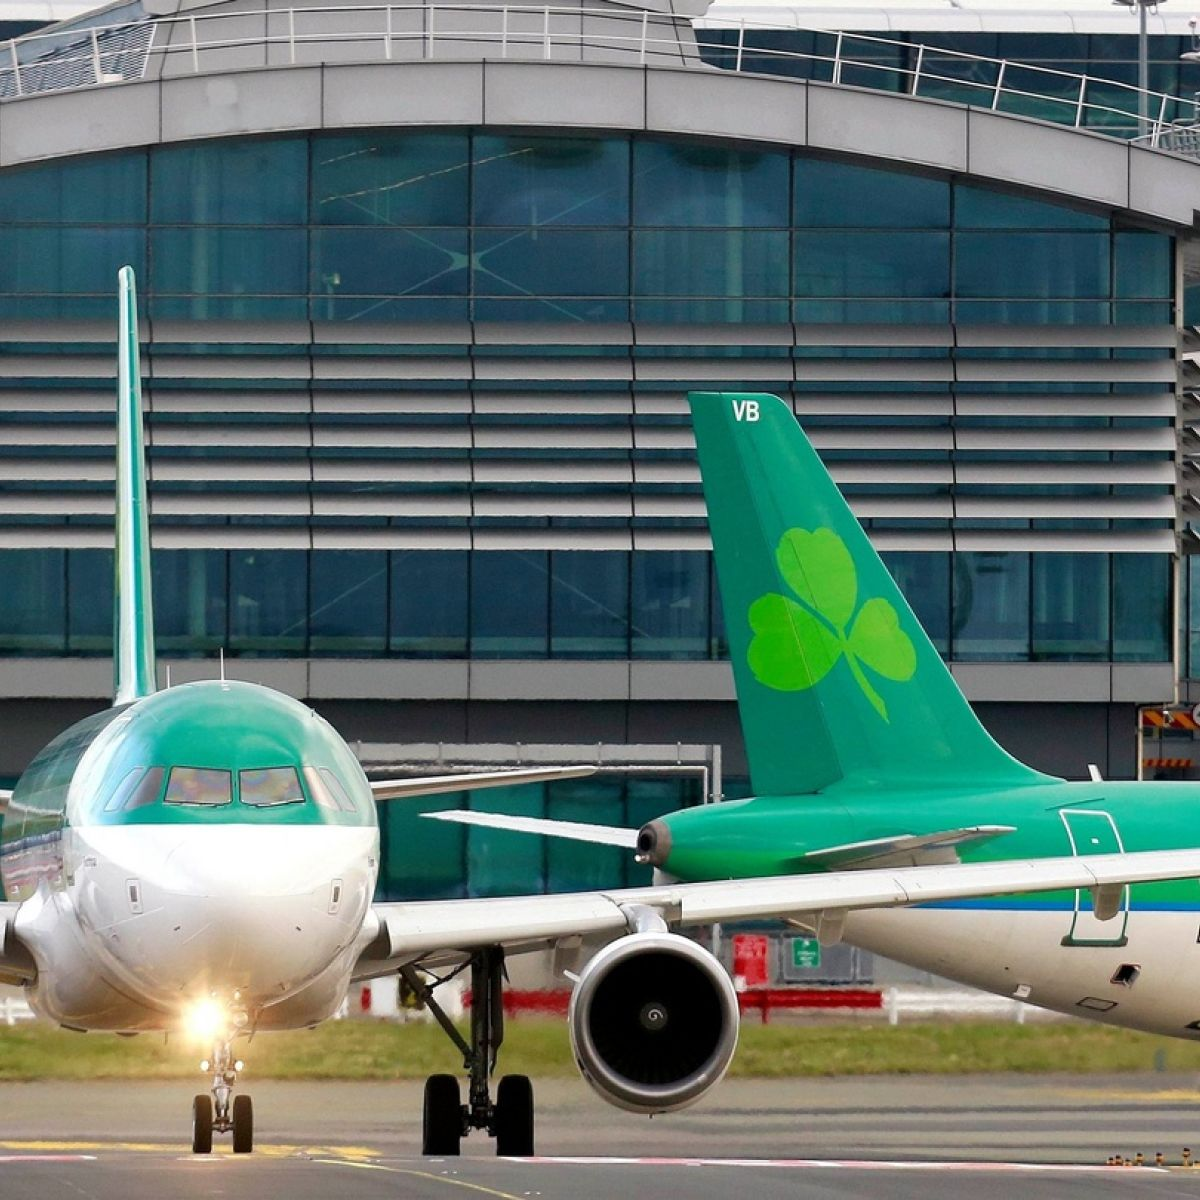 Dublin Airport's security is not in question in Garda inquiry